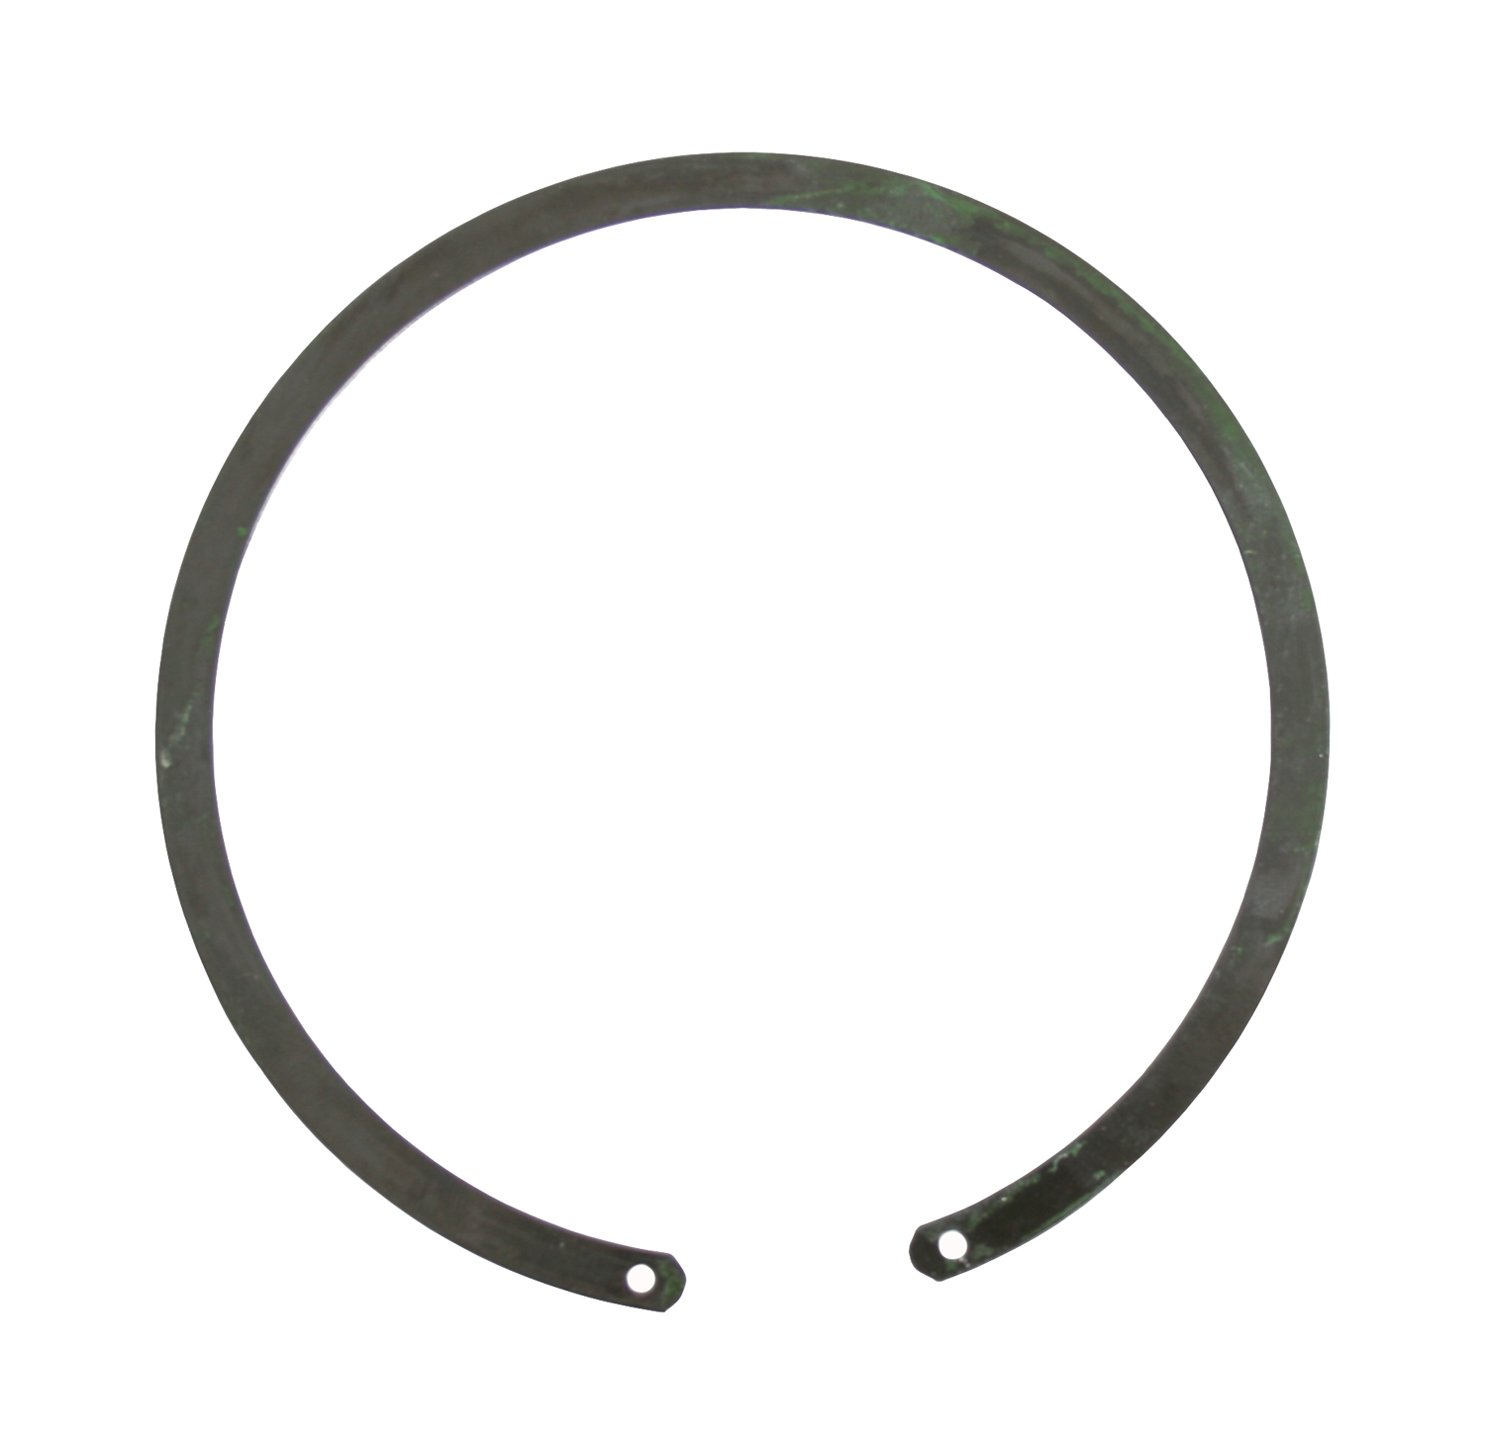 Airtex LR3002 Fuel Tank Lock Ring